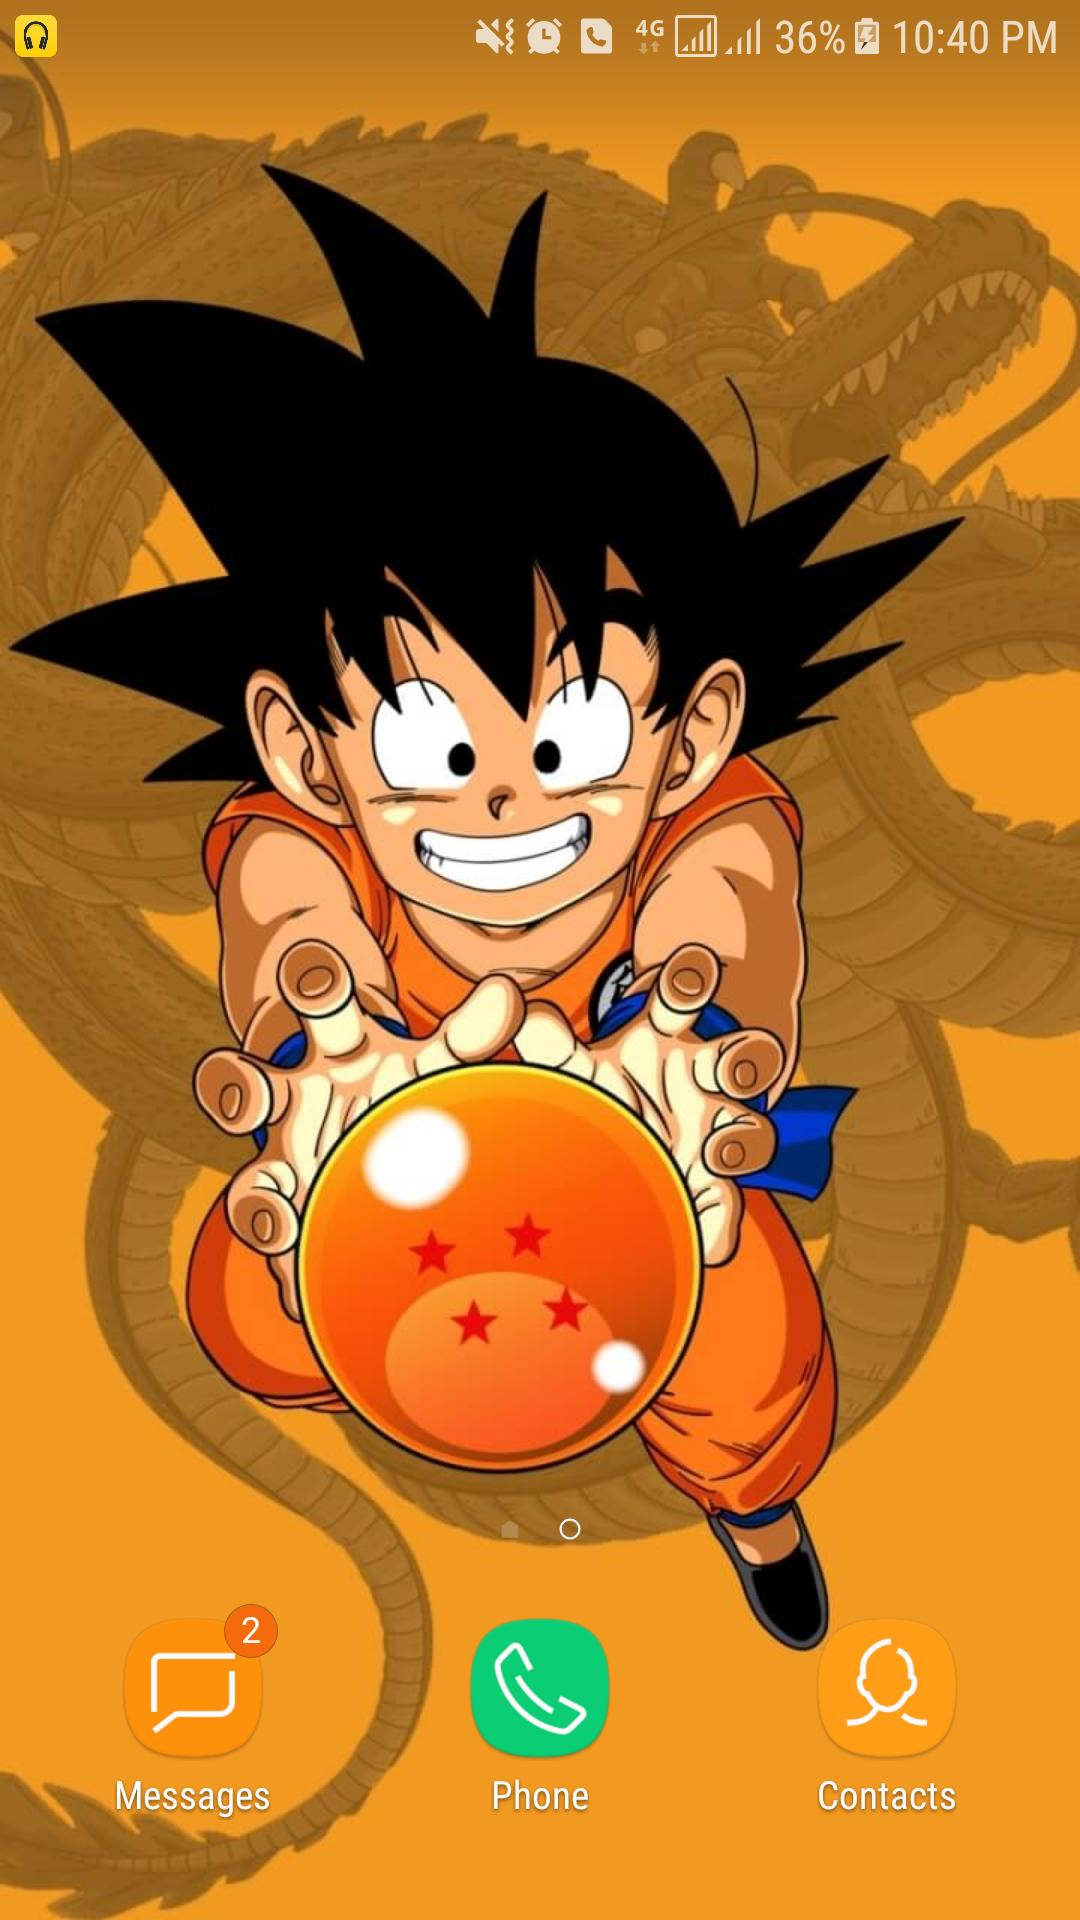 Legendary Dragon Ball Z Wallpapers 2018 For Android Apk Download